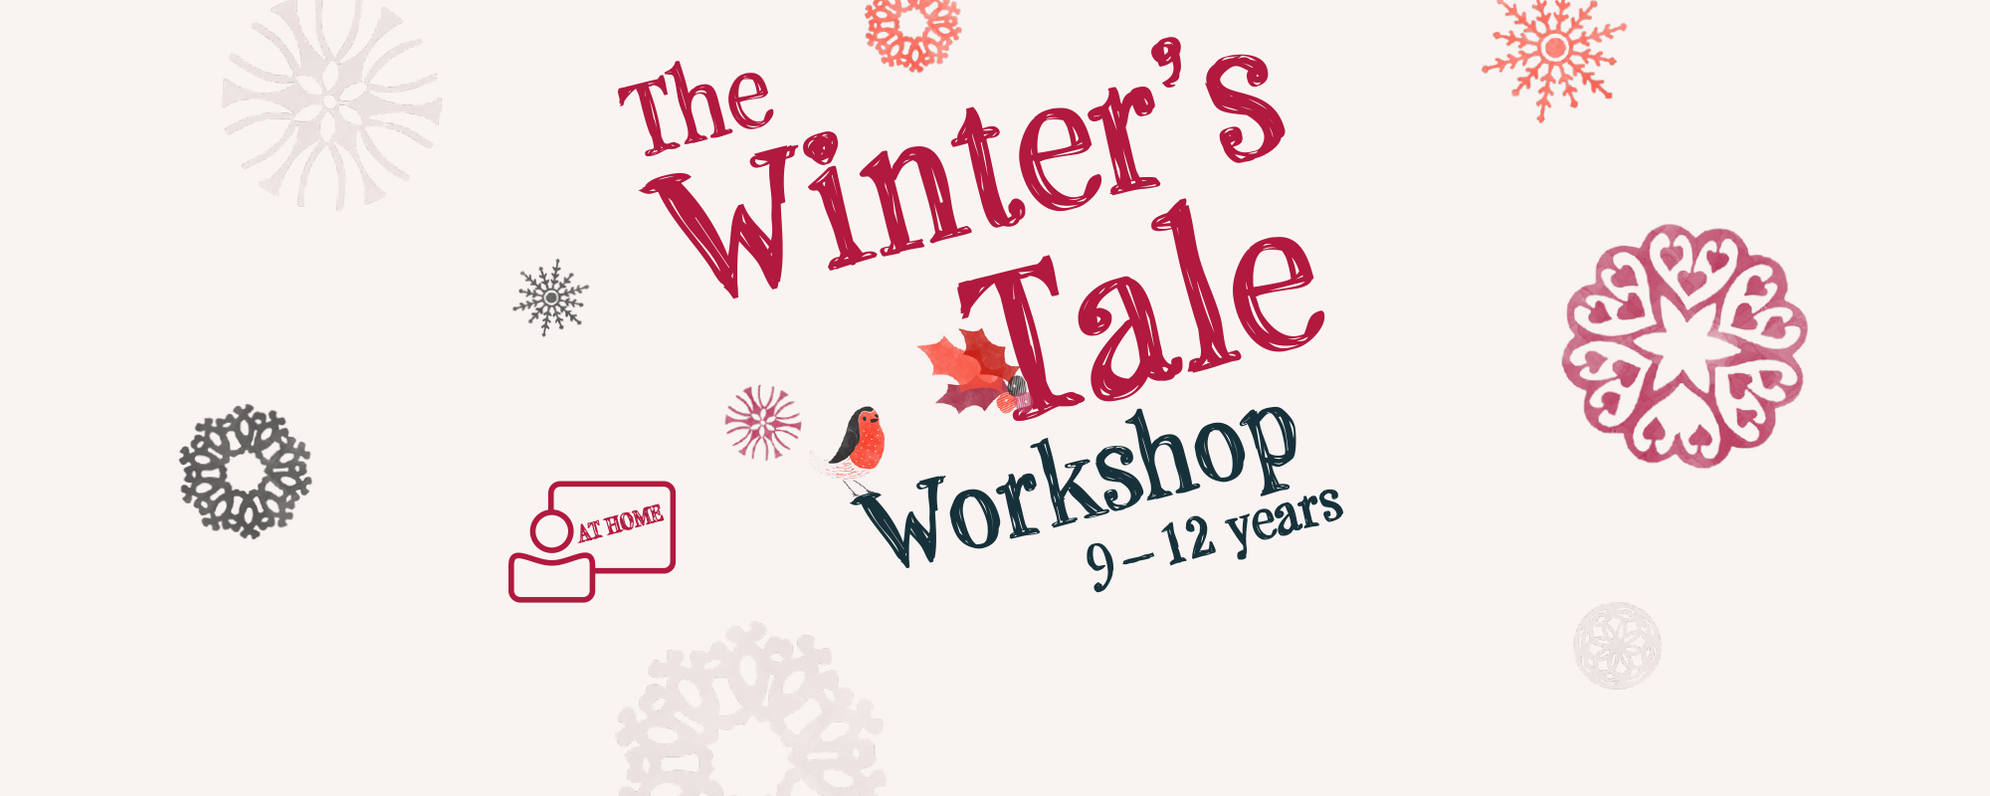 Text: The Winter's Tale Workshop 9-12 years at home, The background had snowflakes, holly and a robin